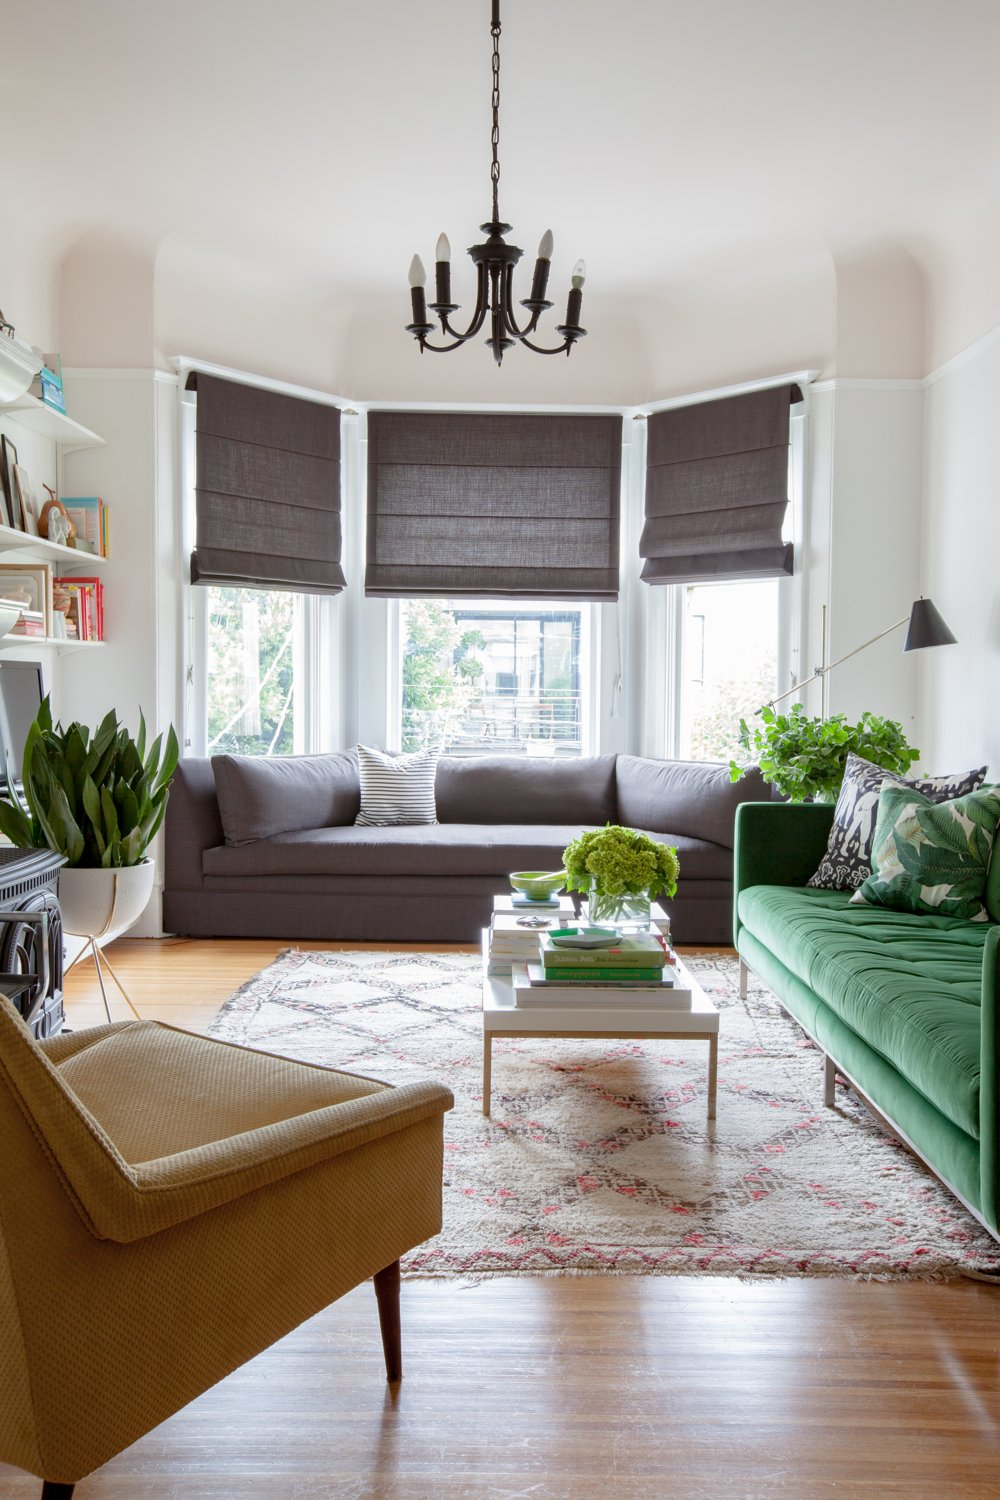 San francisco house tour a cup of jo - Living room bay window treatments ...